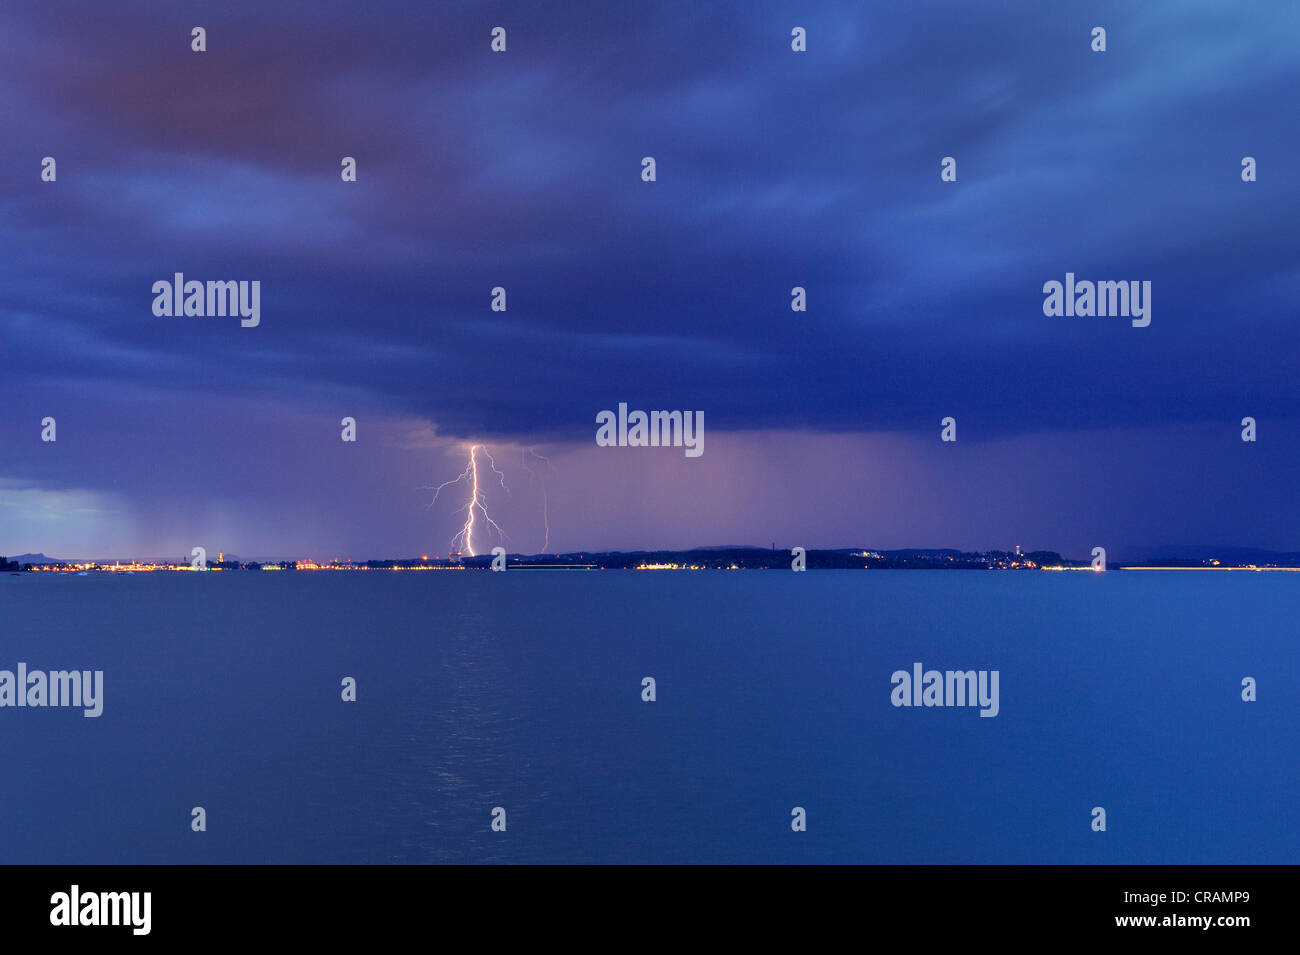 Storm clouds, heavy rain and lightning storm over Konstanz on Lake Constance, Baden-Wuerttemberg, Germany, Europe - Stock Image